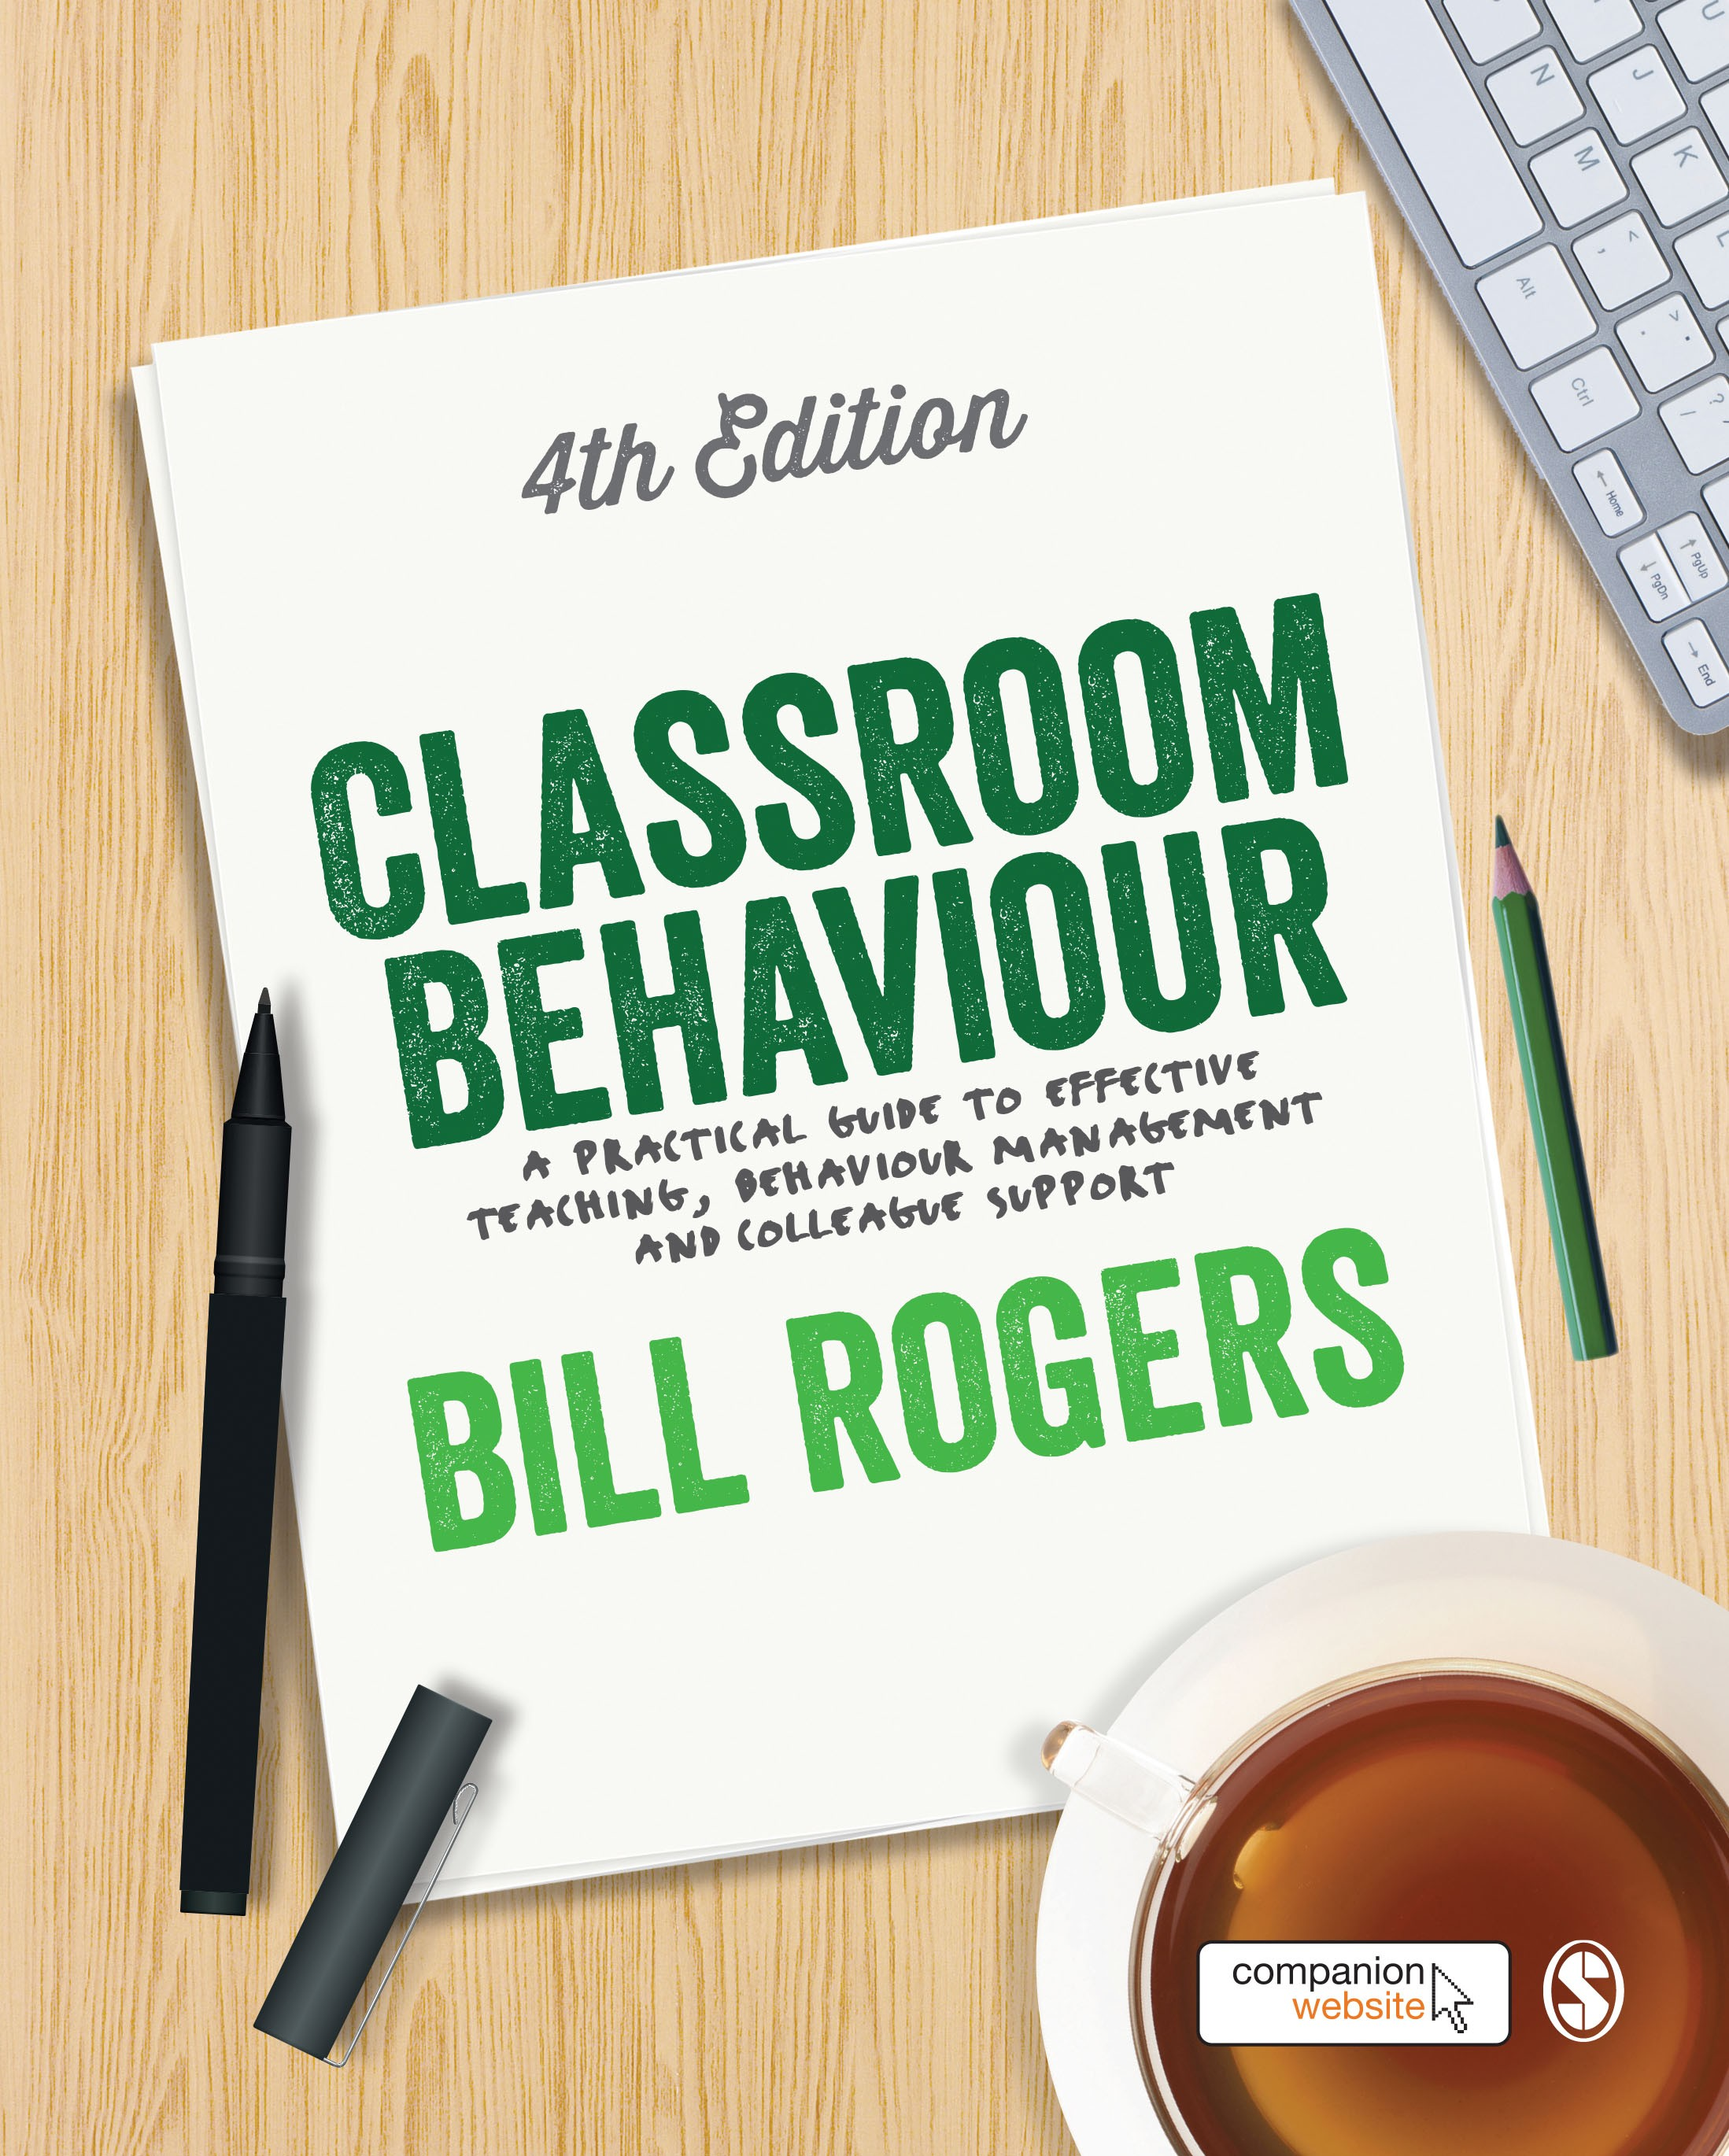 Classroom Behaviour: A Practical Guide to Effective Teaching, Behaviour Management and Colleague Support by Bill Rogers, ISBN: 9781446295335